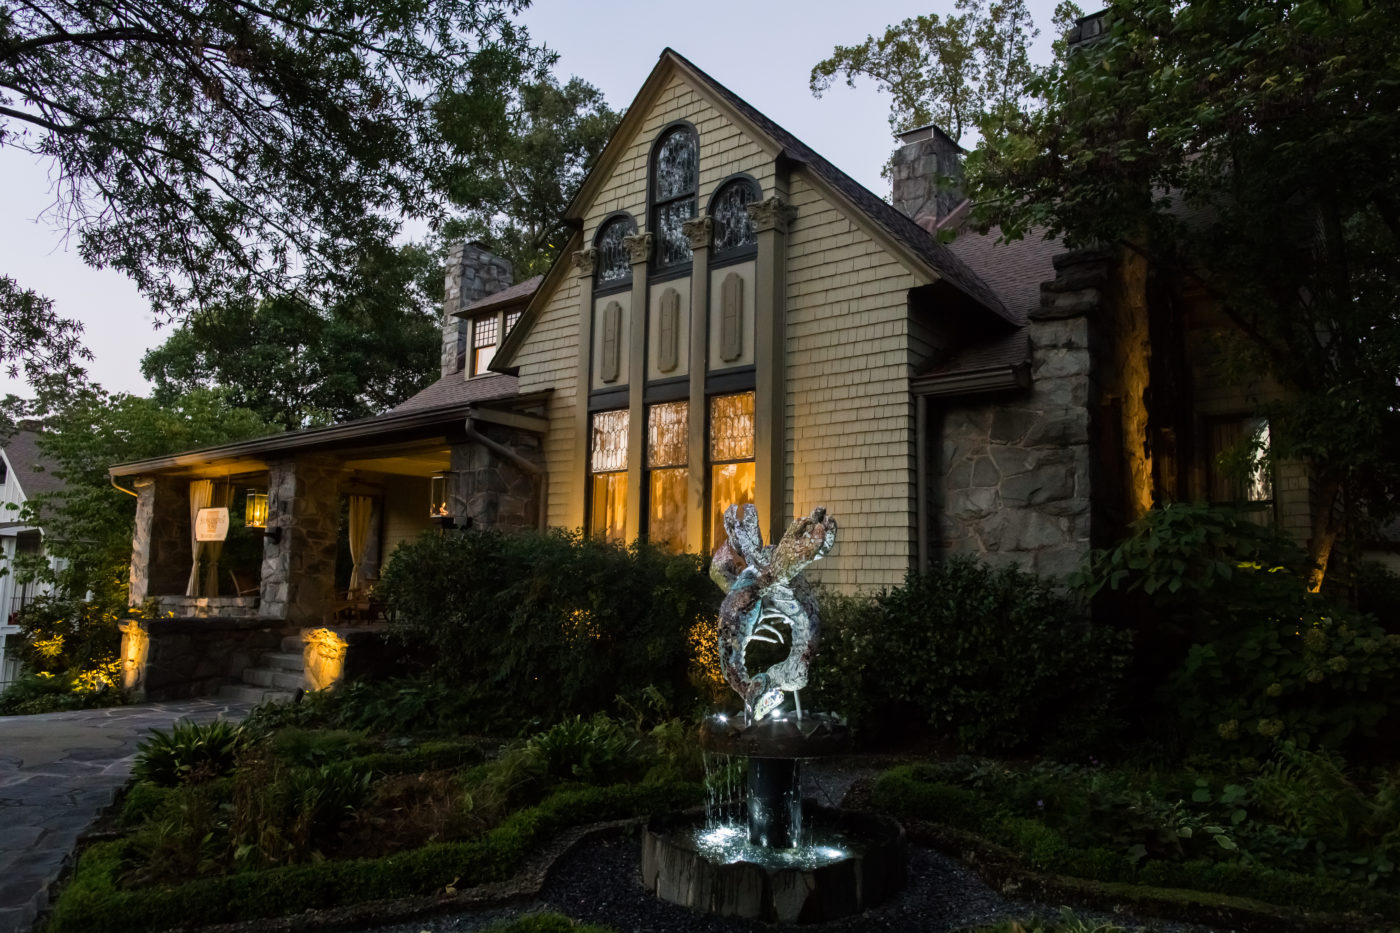 An evening photo of the Stonehurst Place Bed & Breakfast in Atlanta Georgia, USA